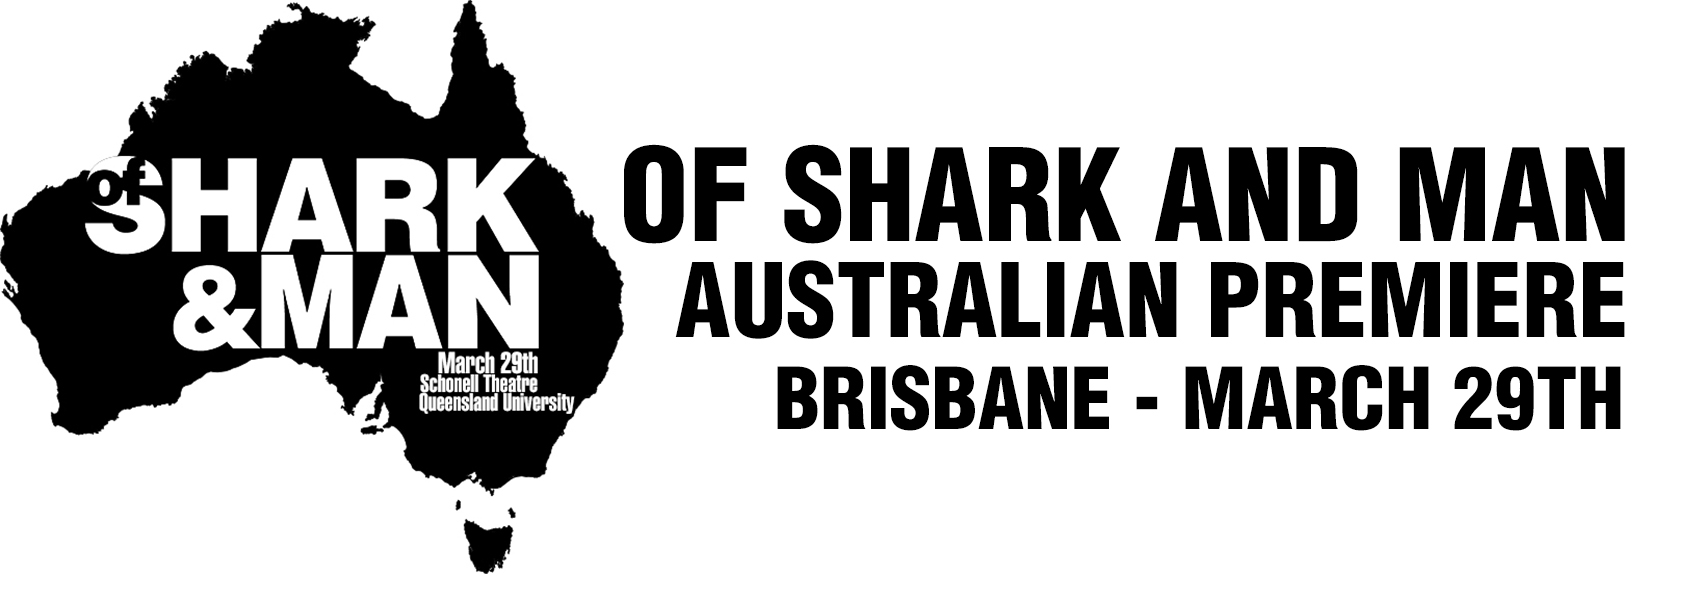 Of Shark and Man Australian Premiere